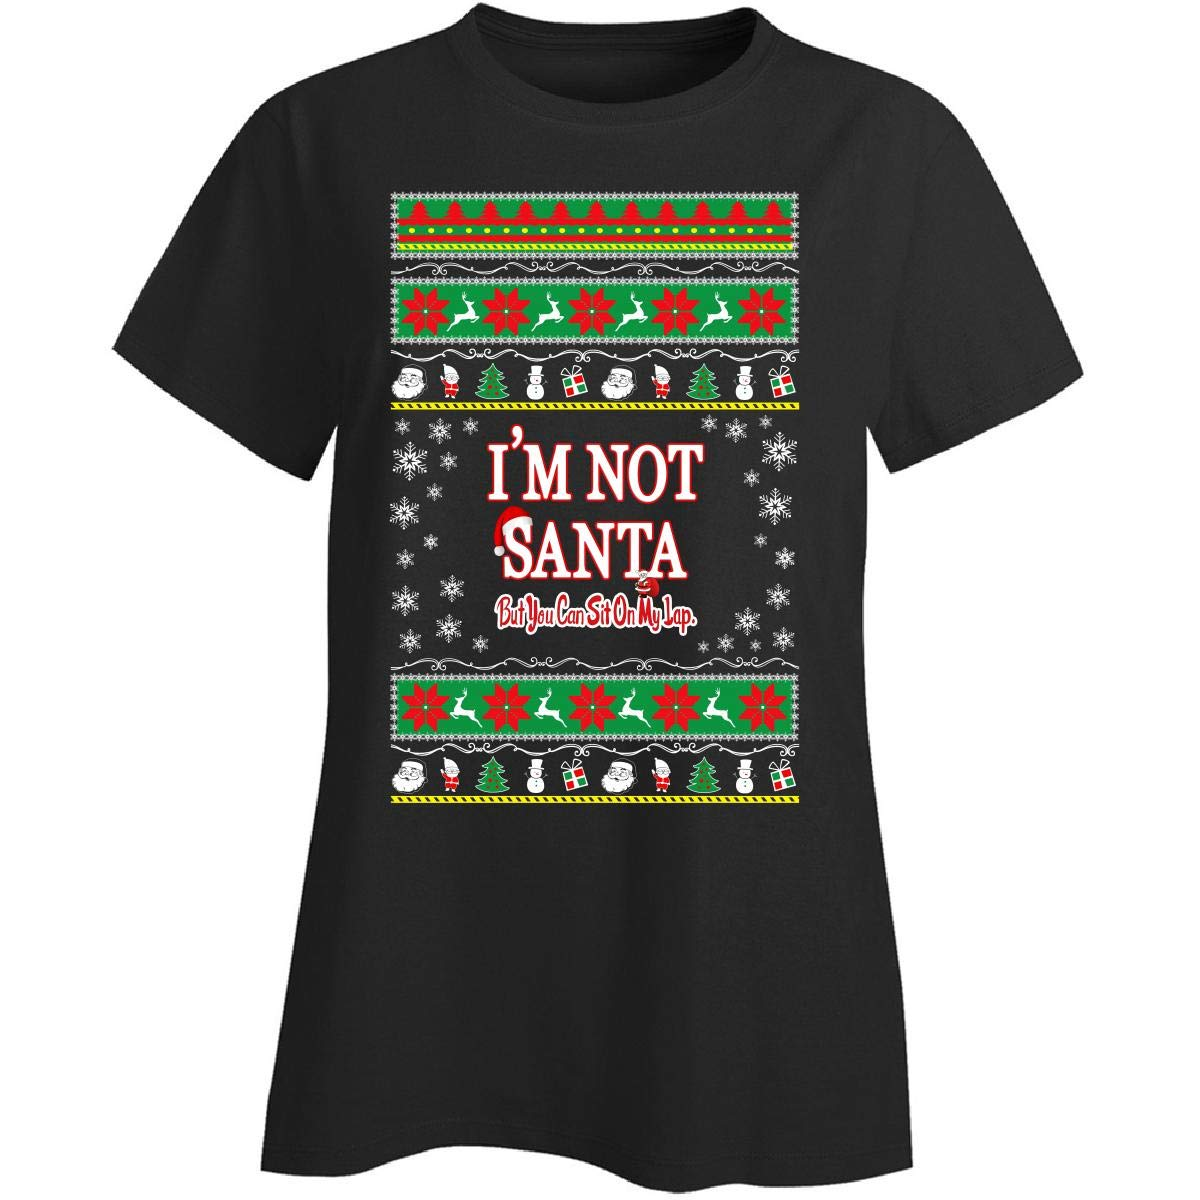 8580ae1d4 Ugly Christmas Sweater Gift Funny Novelty Im Not Santa Ttb1 - Ladies T-Shirt  at Amazon Women's Clothing store: